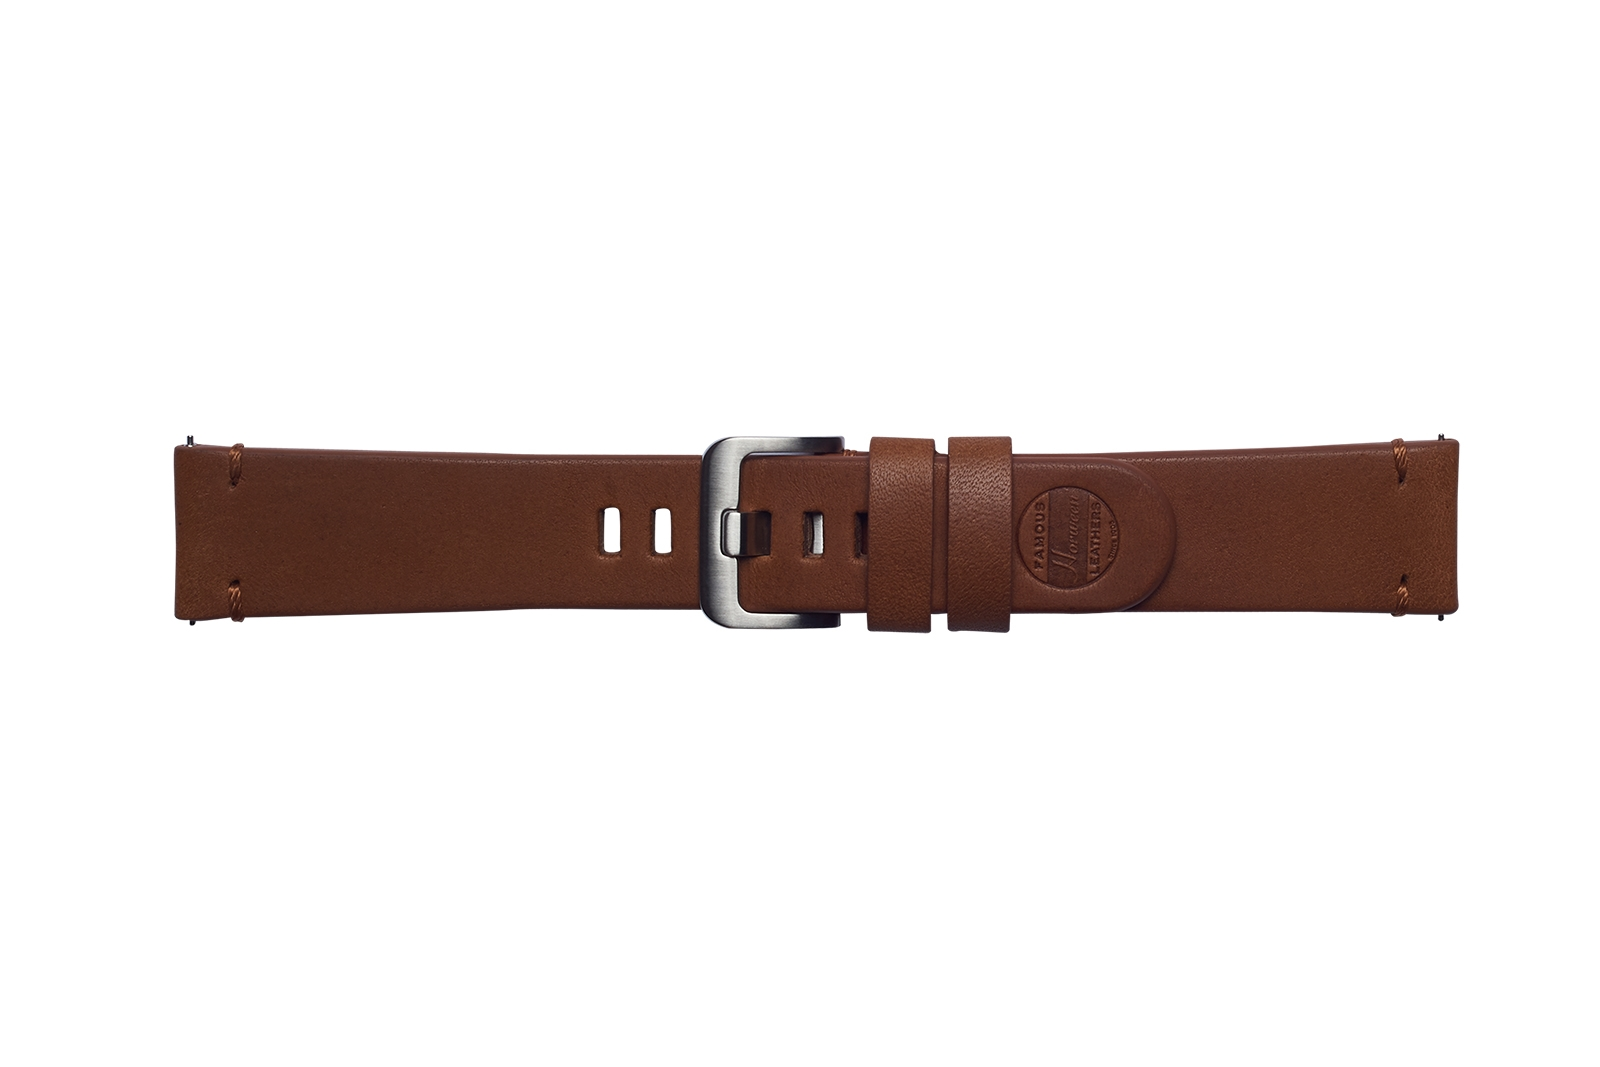 Essex Leather Band for Galaxy Watch 42mm & Gear Sport, Brown